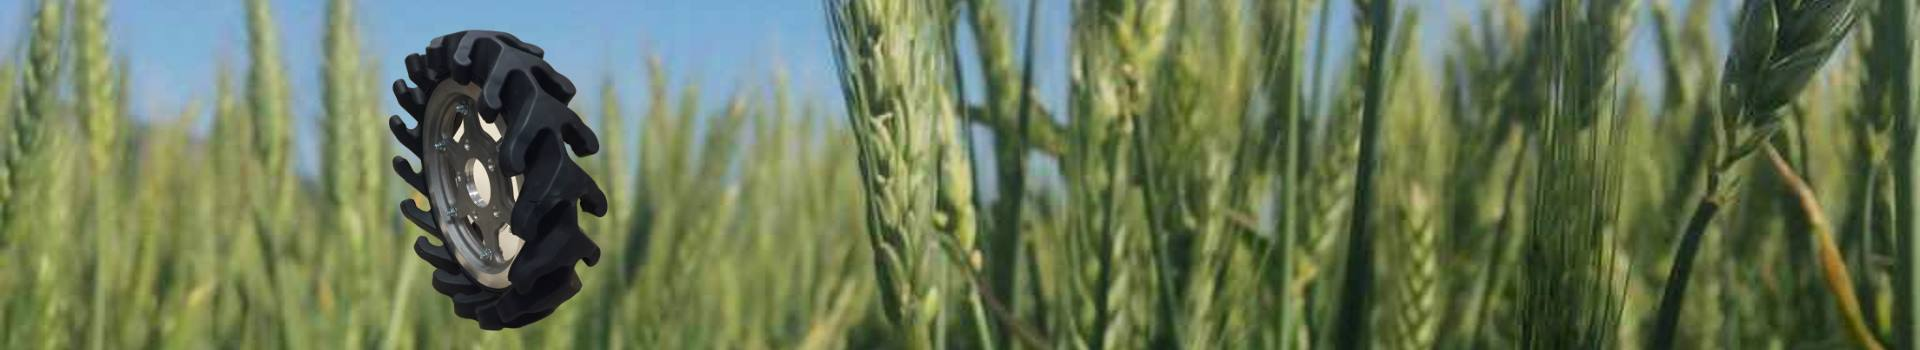 Emu Tracker Wheels